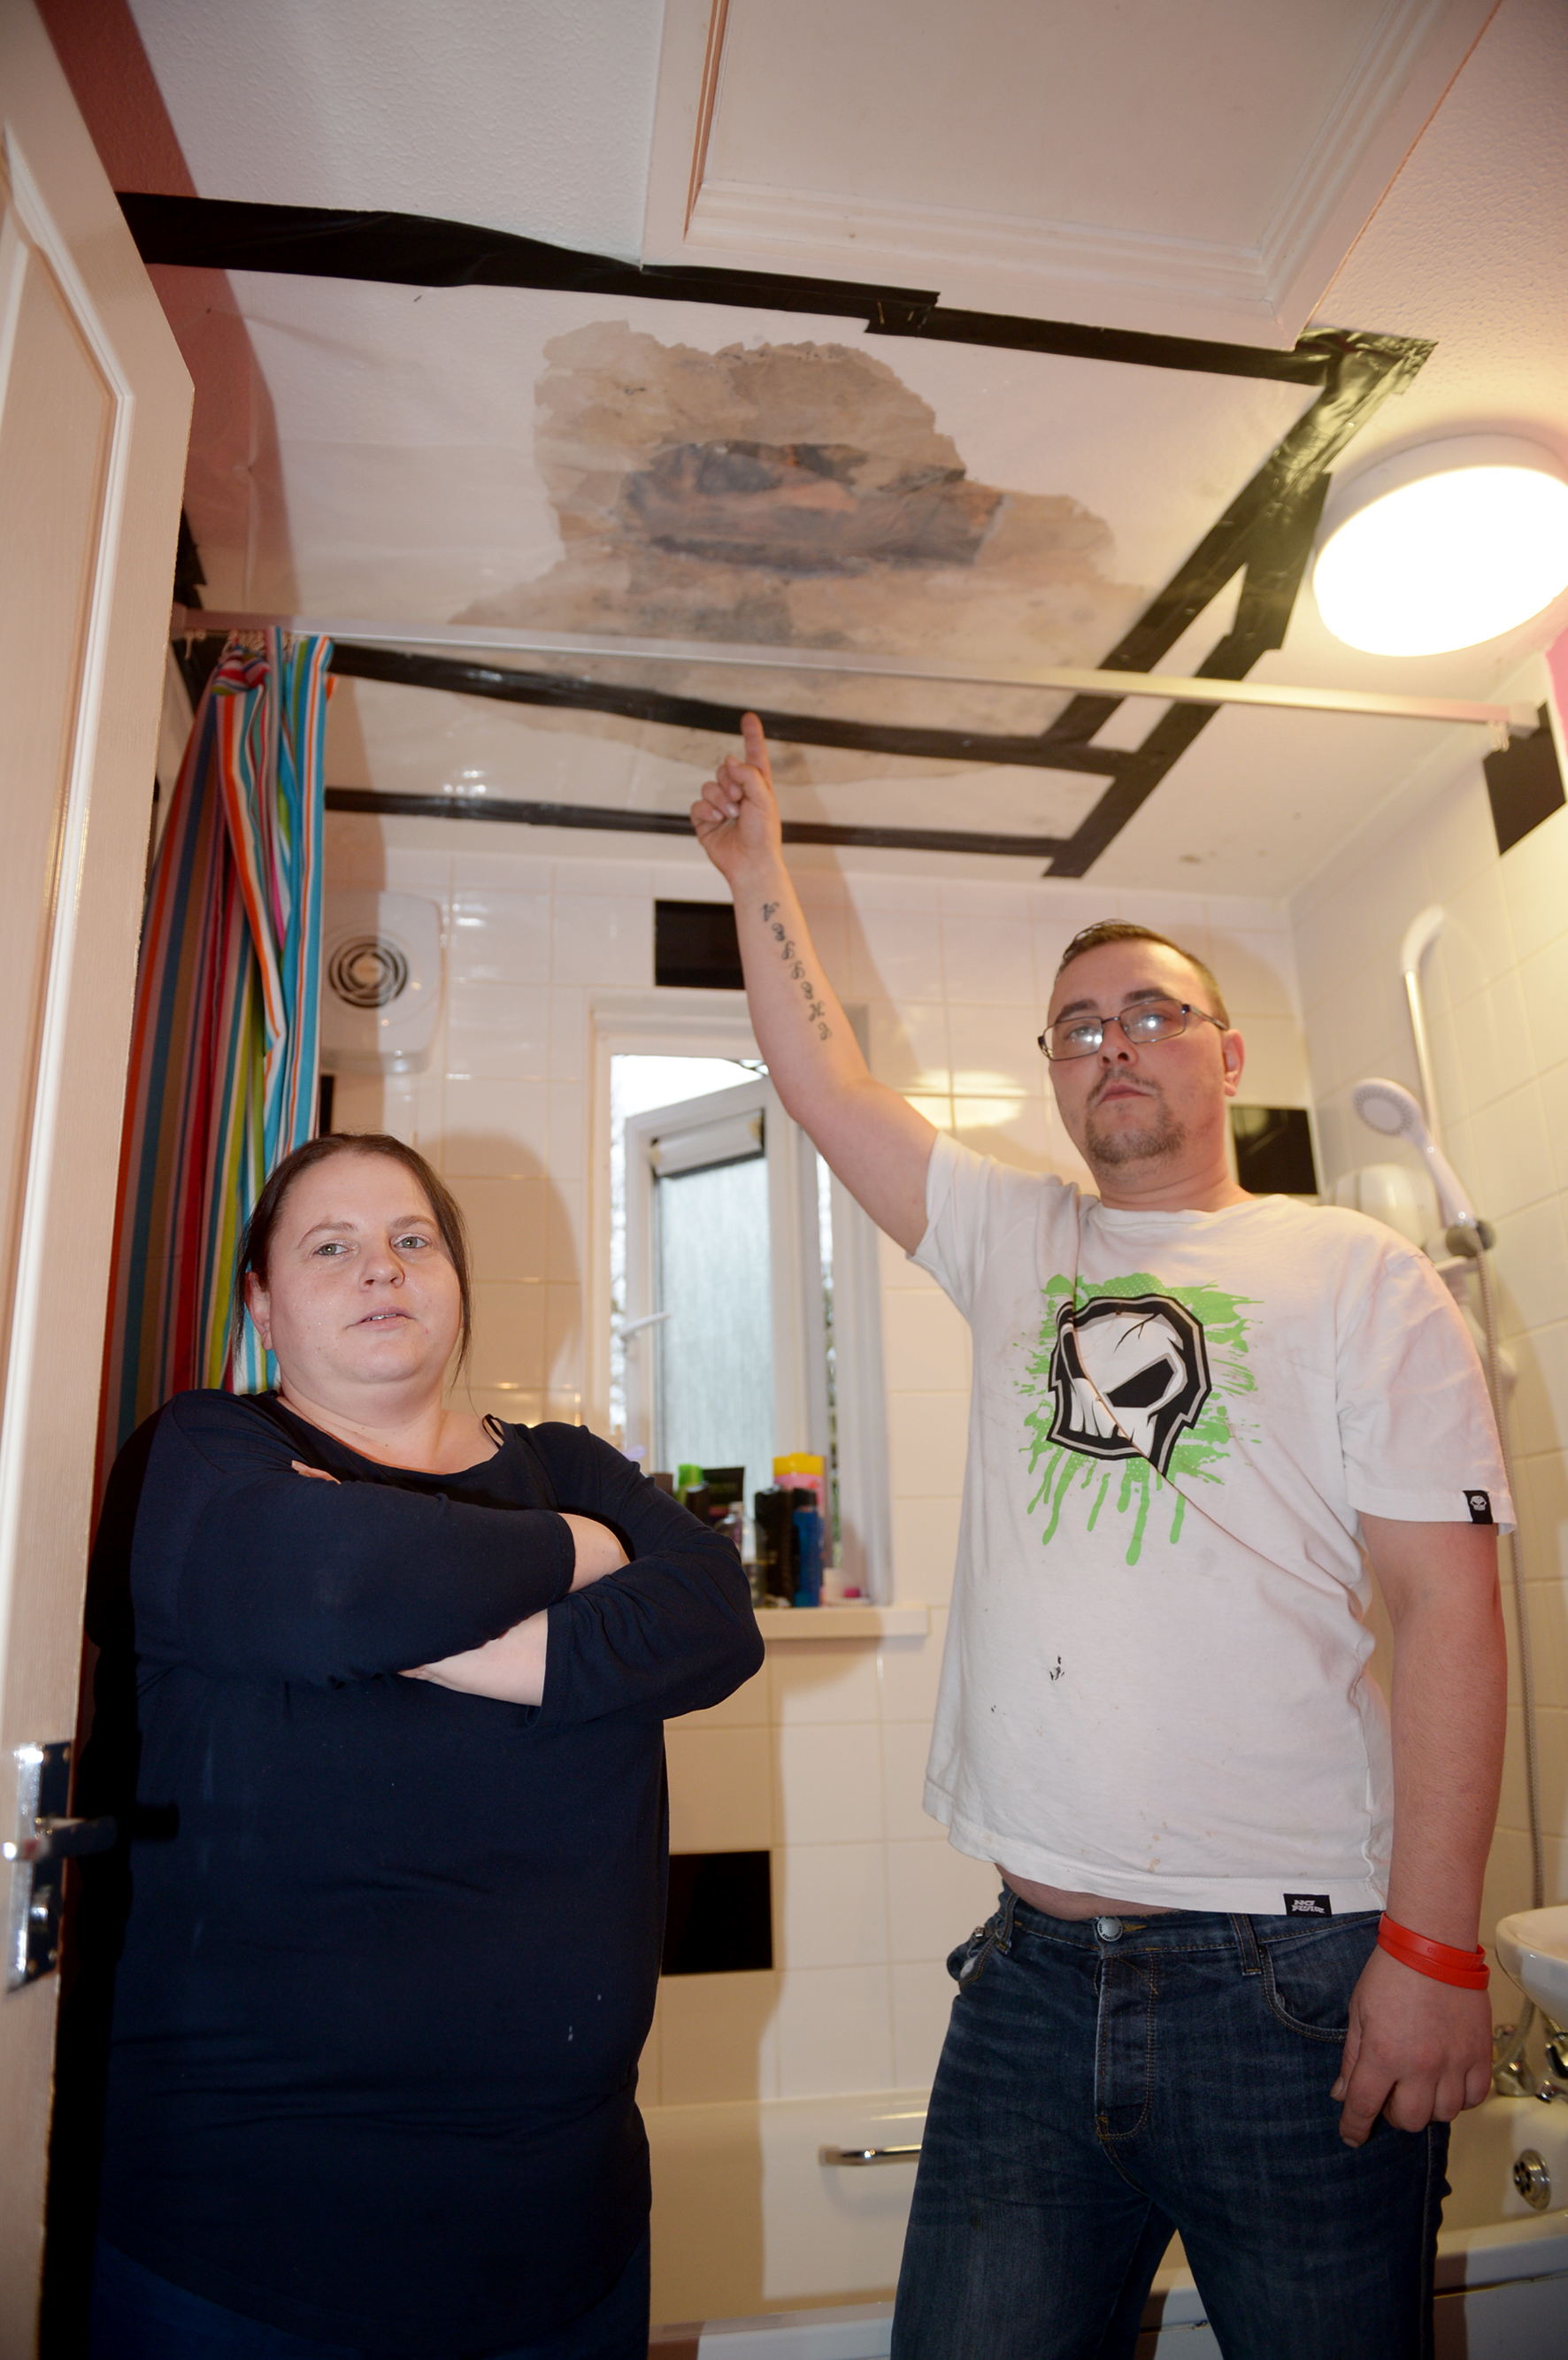 Missing tiles leads to ceiling collapse